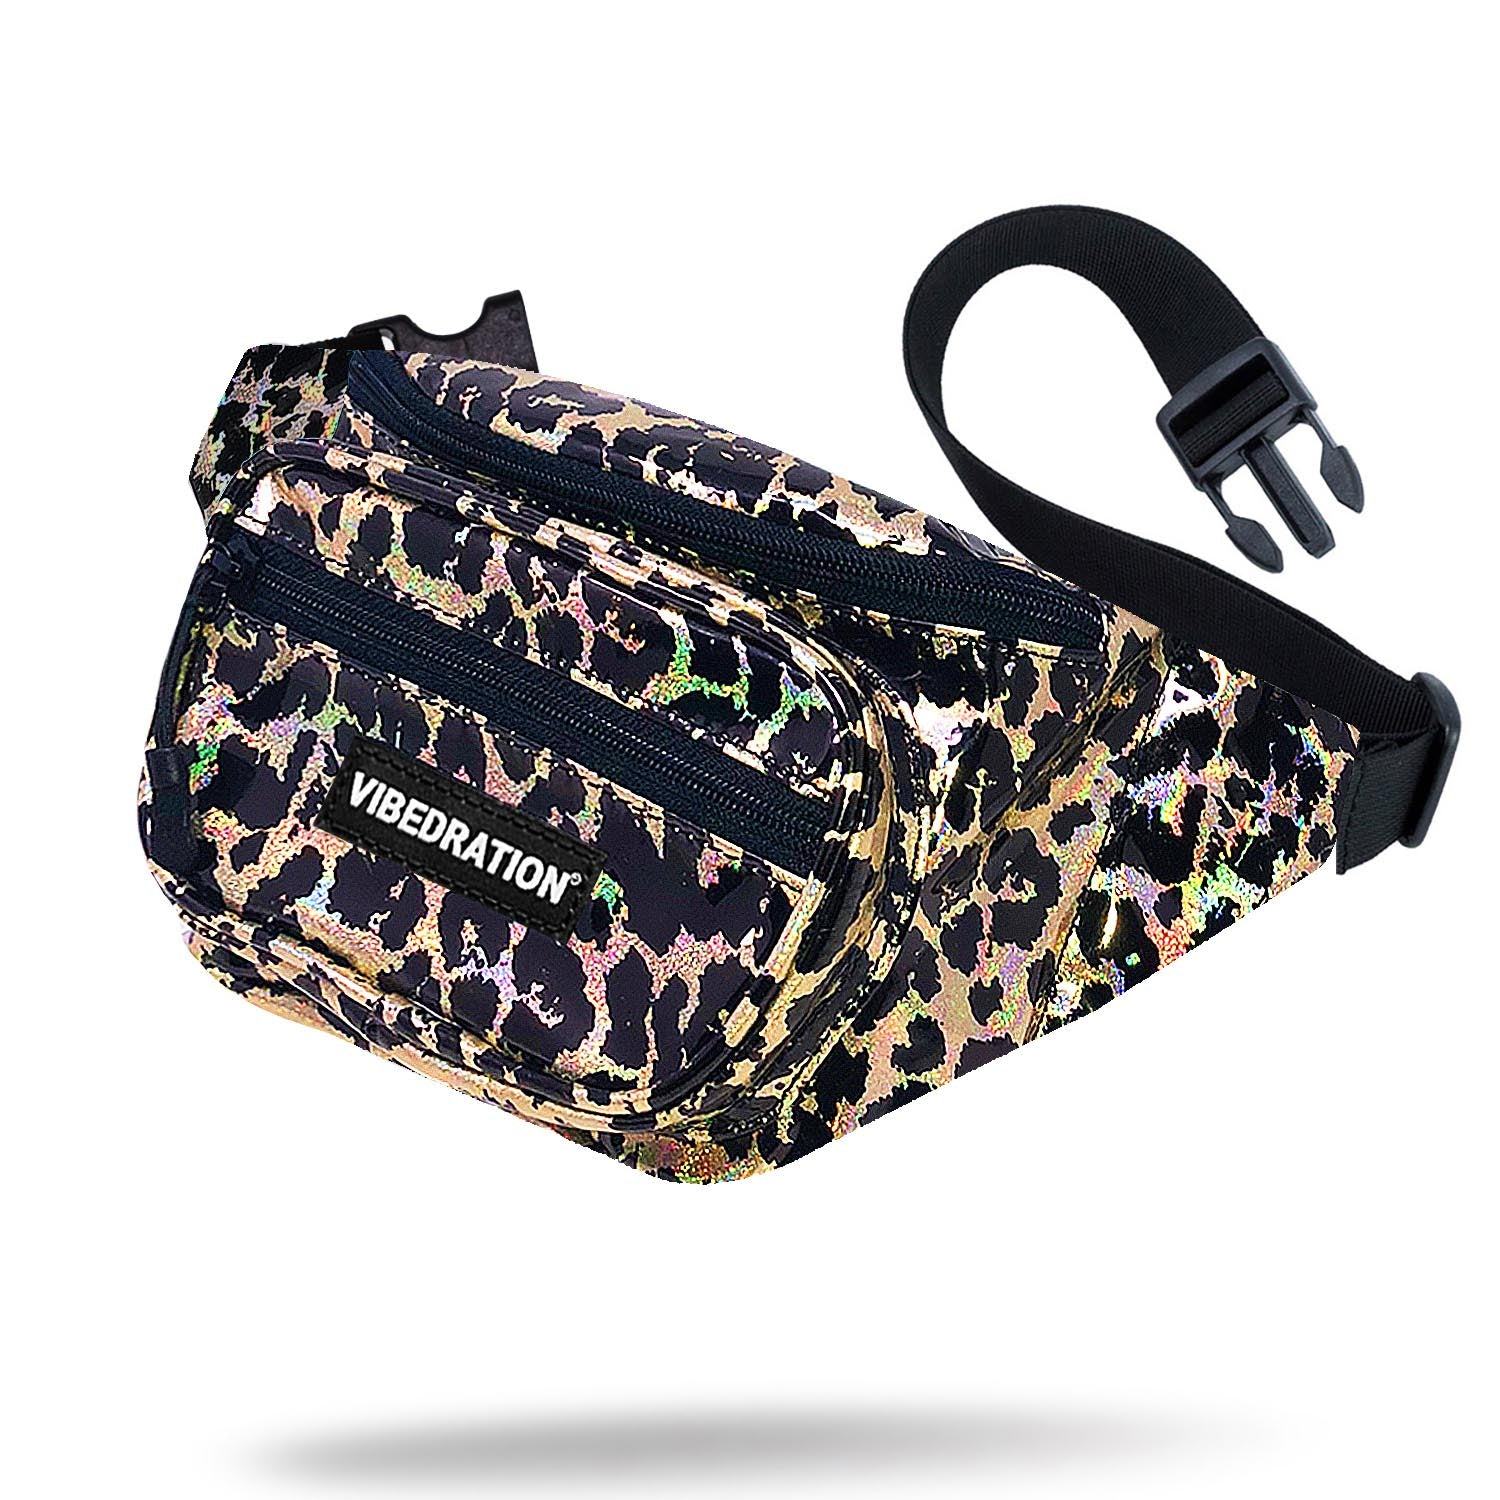 Cheetah fanny pack for raves and music festivals